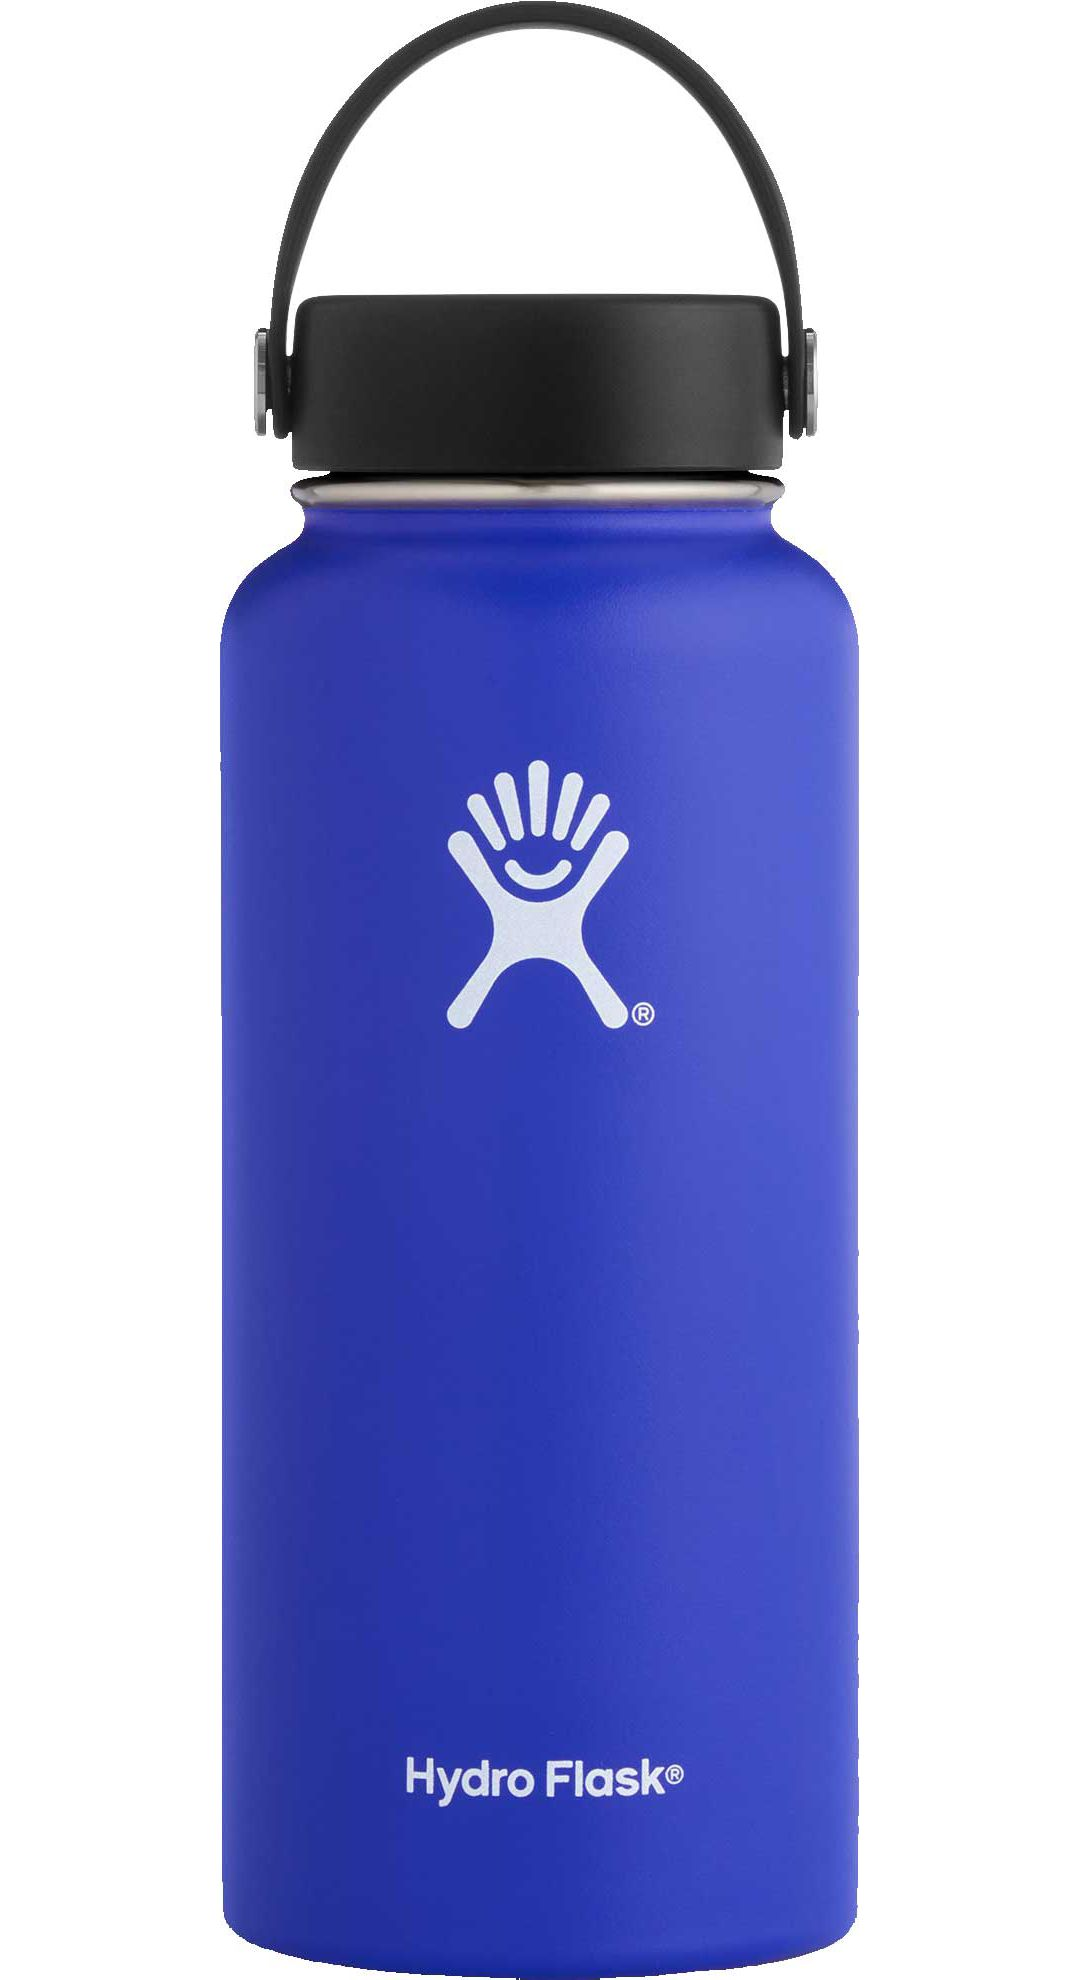 6dad0914e3 Hydro Flask Water Bottle   Now 25% Off at DICK'S